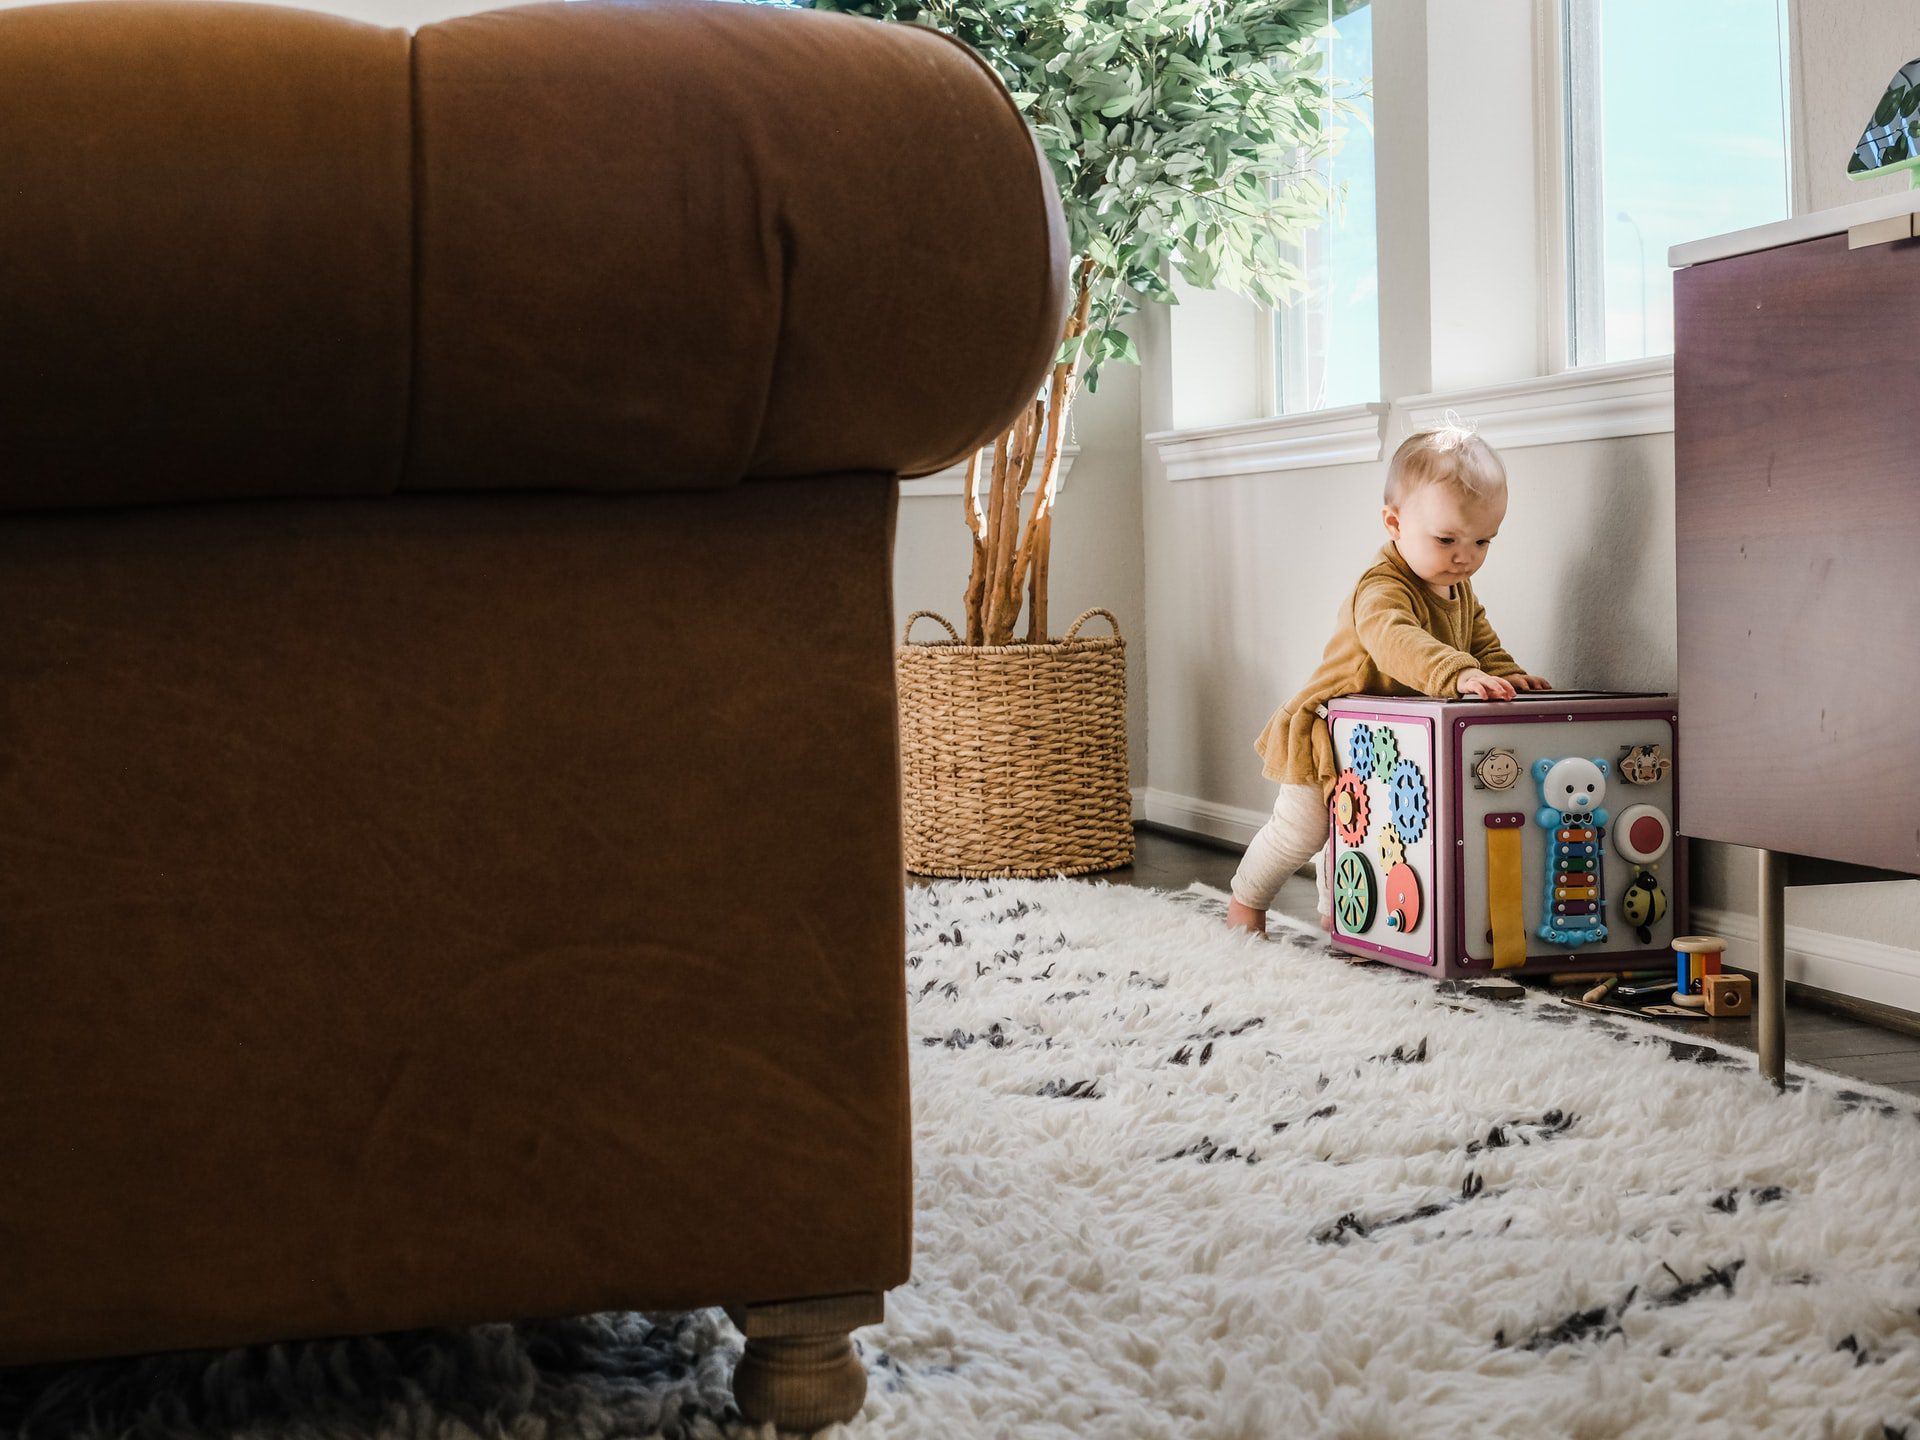 You are currently viewing 6 Things You Can Find in A House with a Toddler